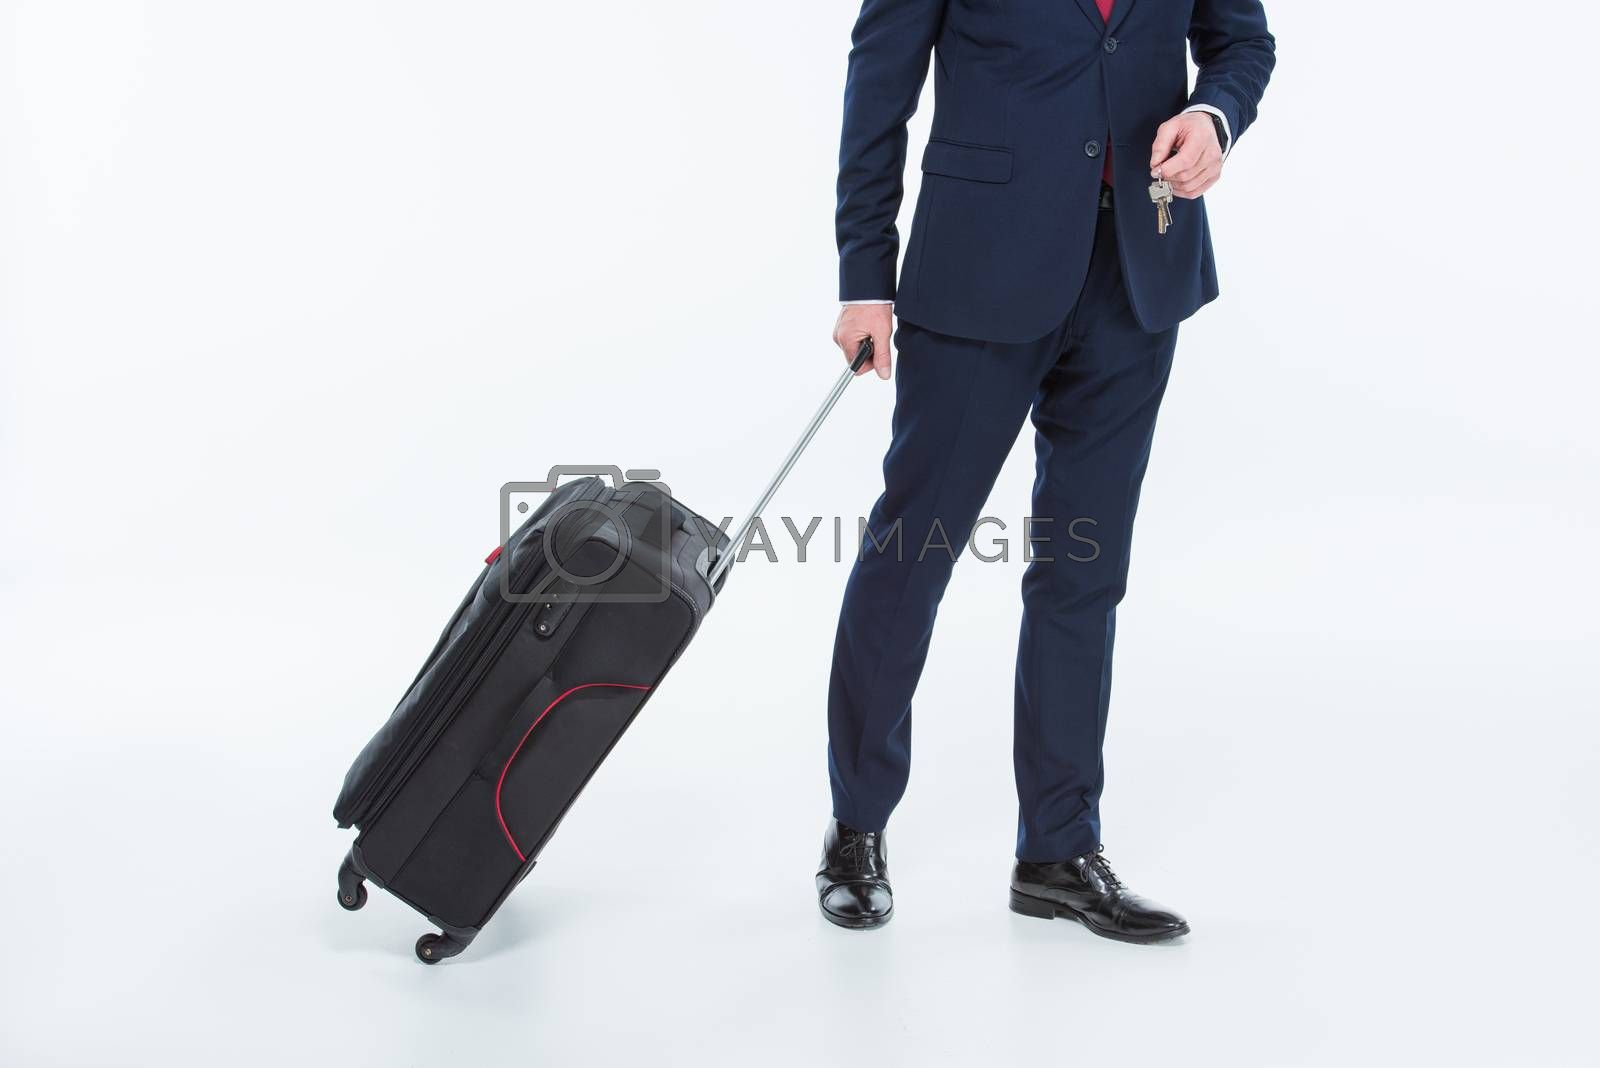 Partial view of businessman holding suitcase and keys